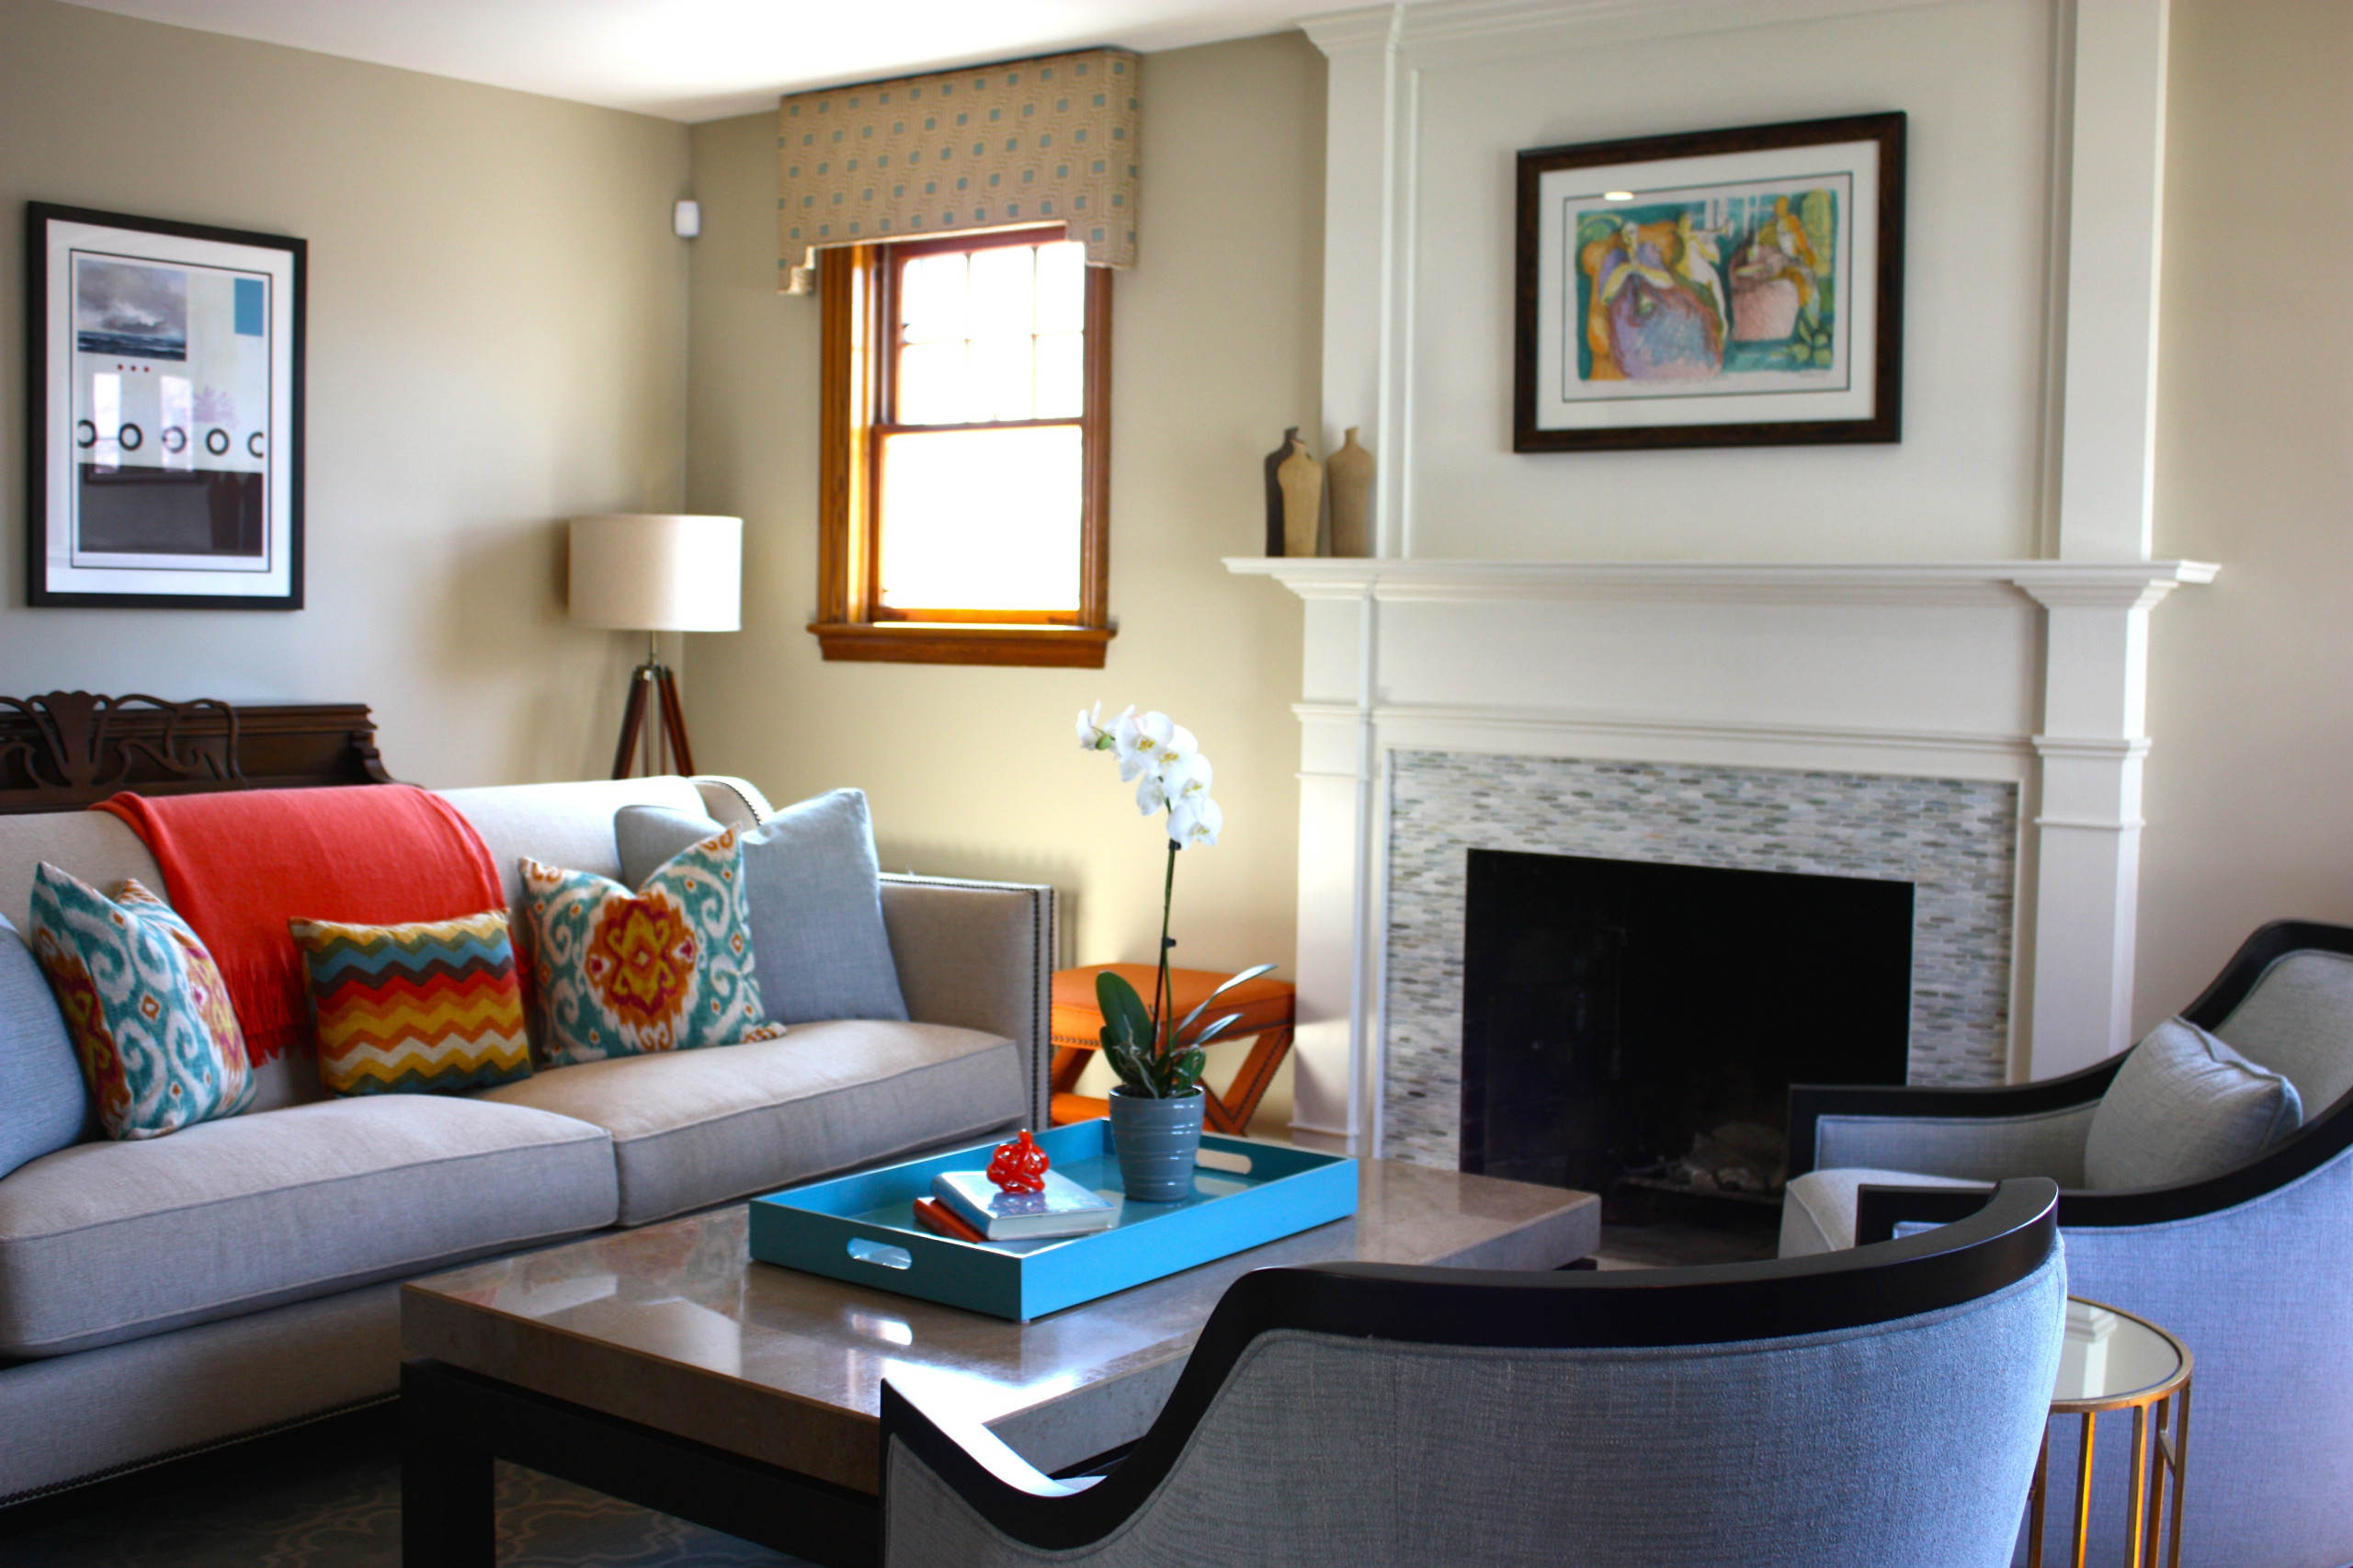 A Contemporary Twist on a Dated Living Room